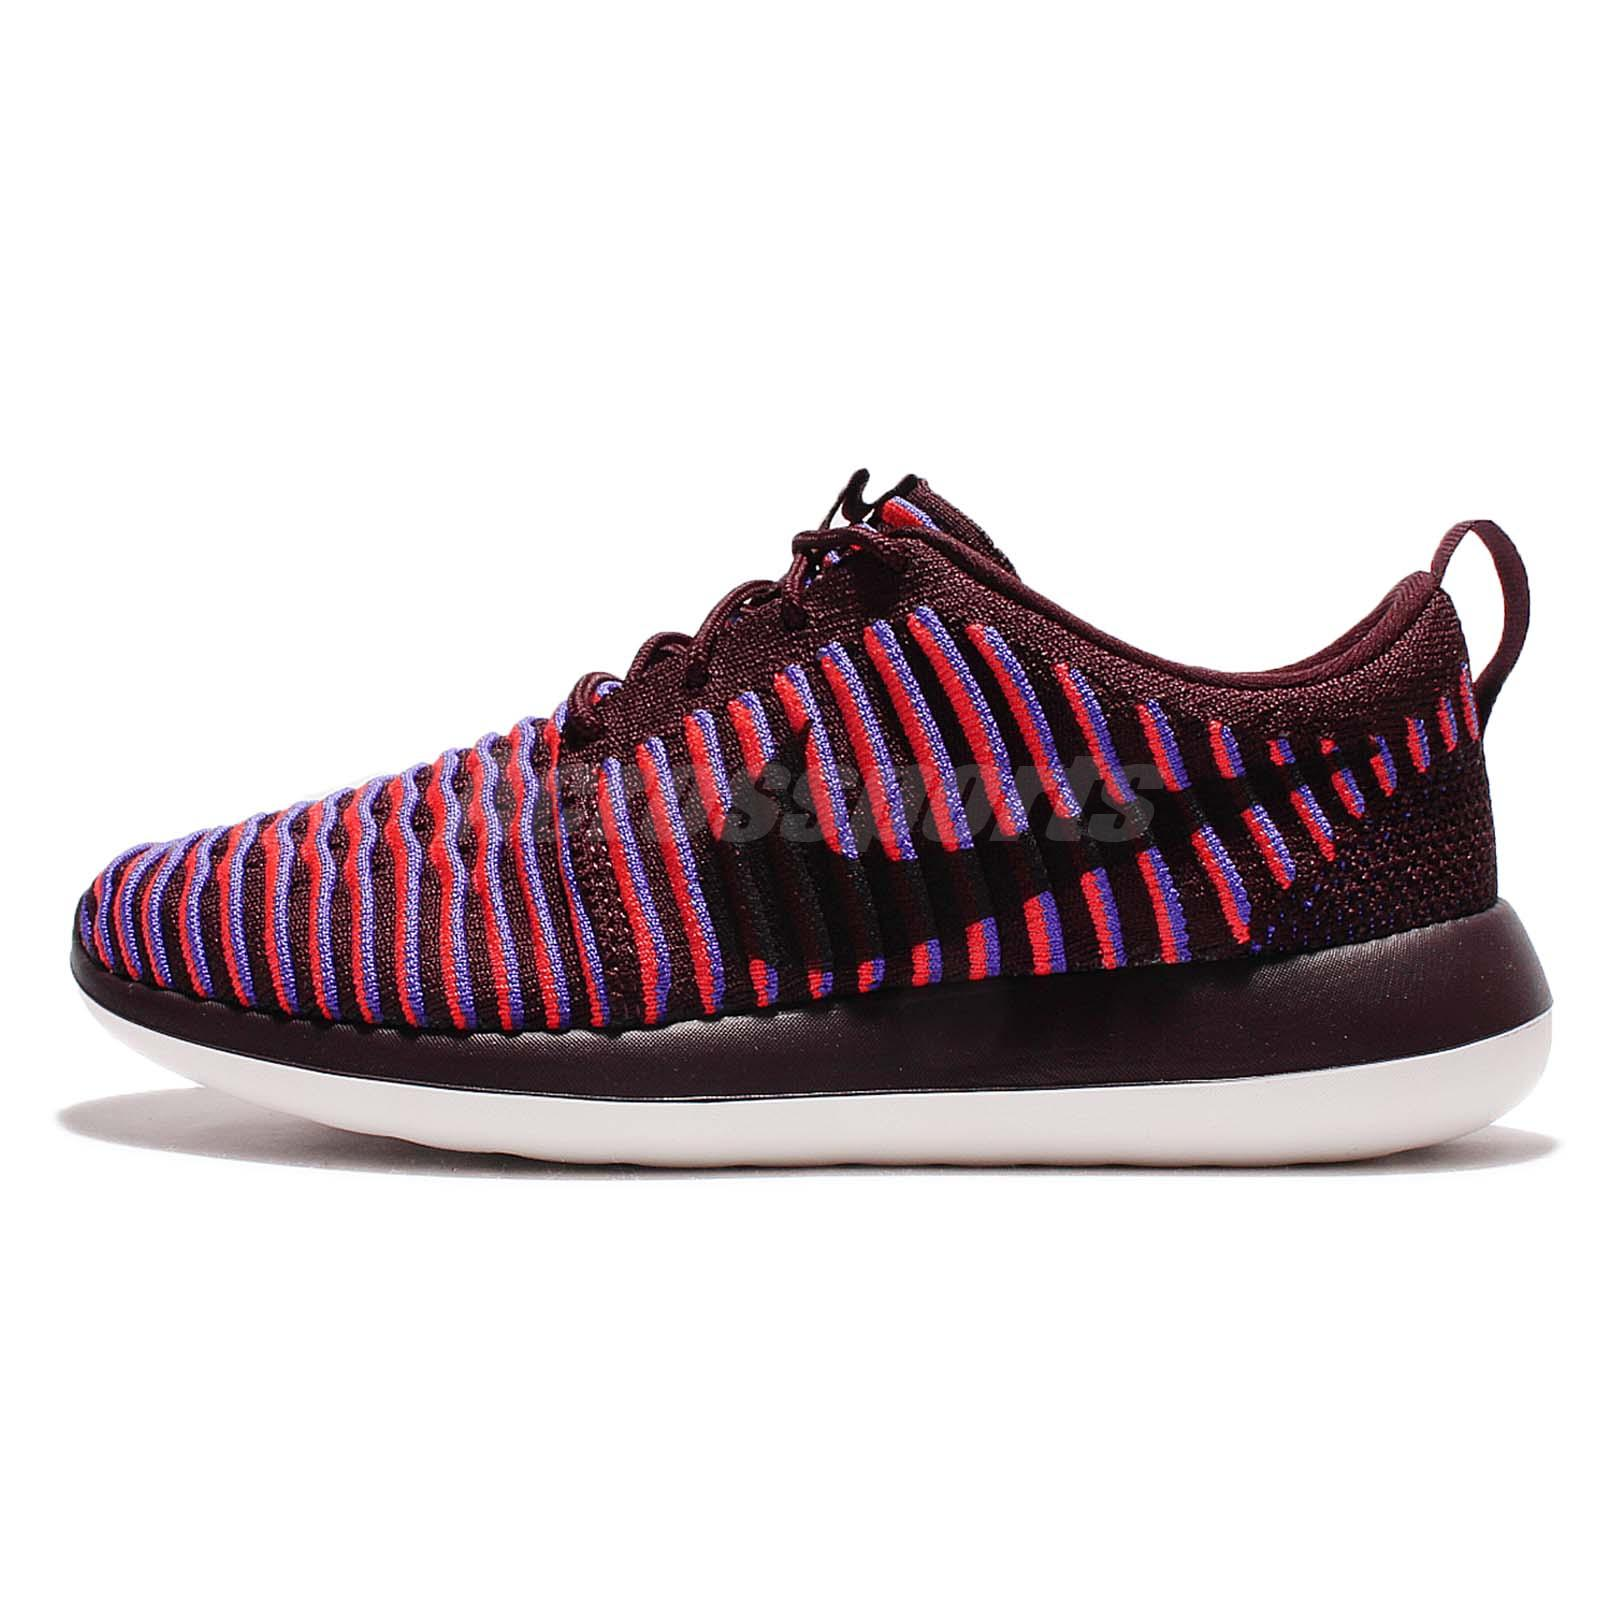 best website f42e8 af1c4 ... Wmns Nike Roshe Two Flyknit 2 Rosherun Red Purple Women Shoes Sneaker  844929-601